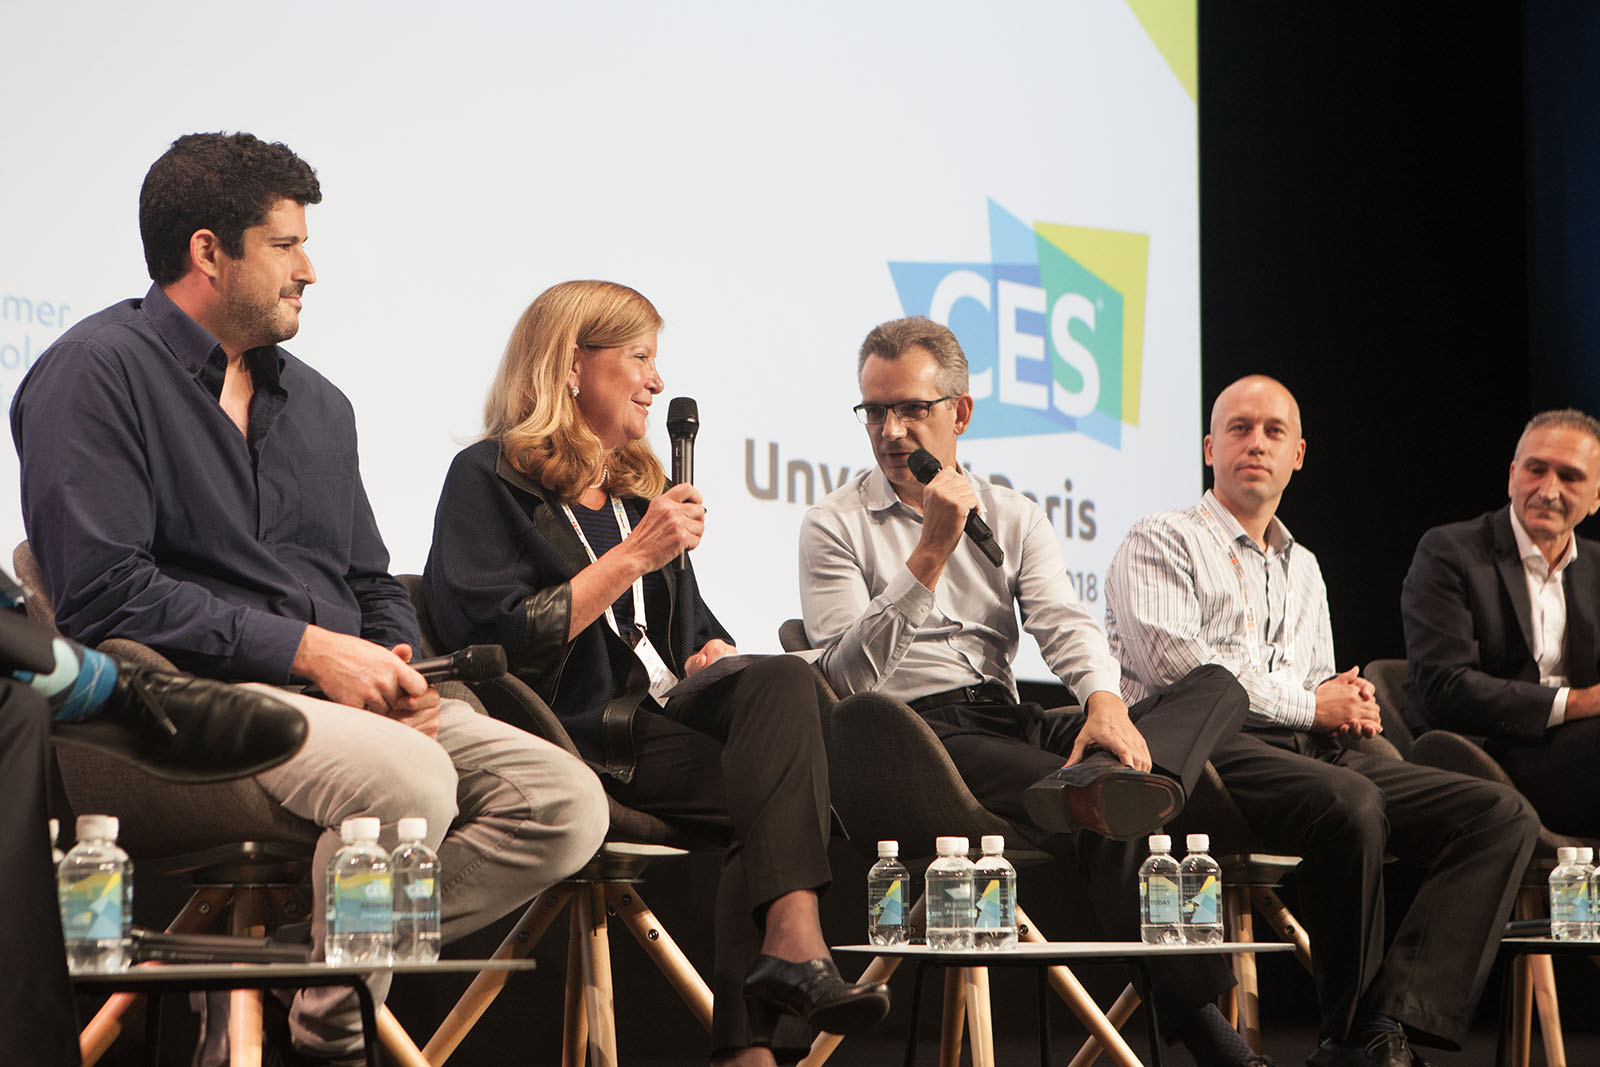 ces-2020-policy-updates-new-partnership-programming-track-innovation-for-all